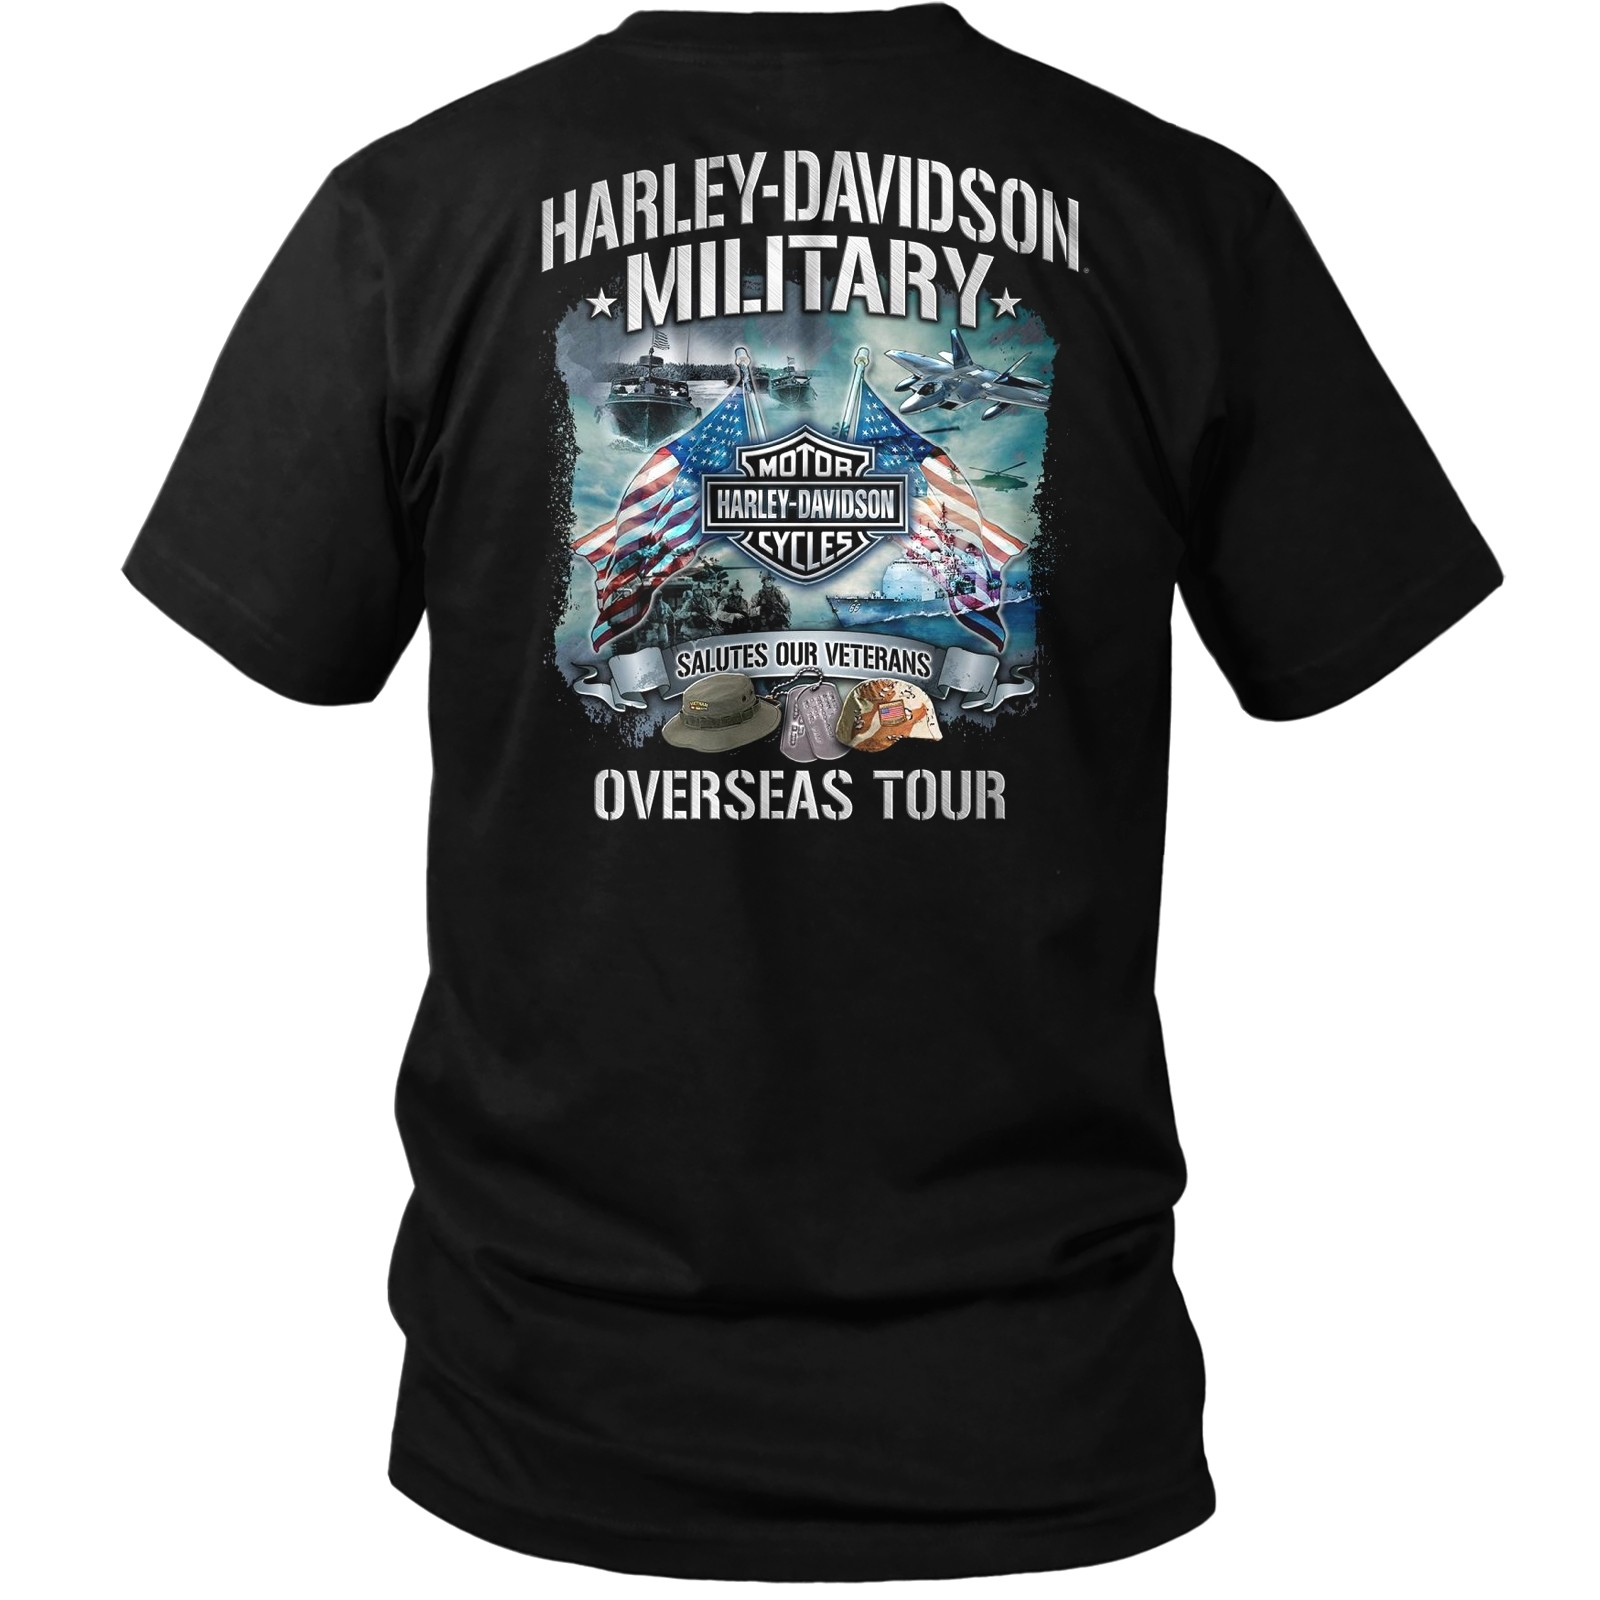 Harley-Davidson Military - Men's Bar & Shield Orange on Black T-Shirt - Overseas Tour | Salutes Our Veterans